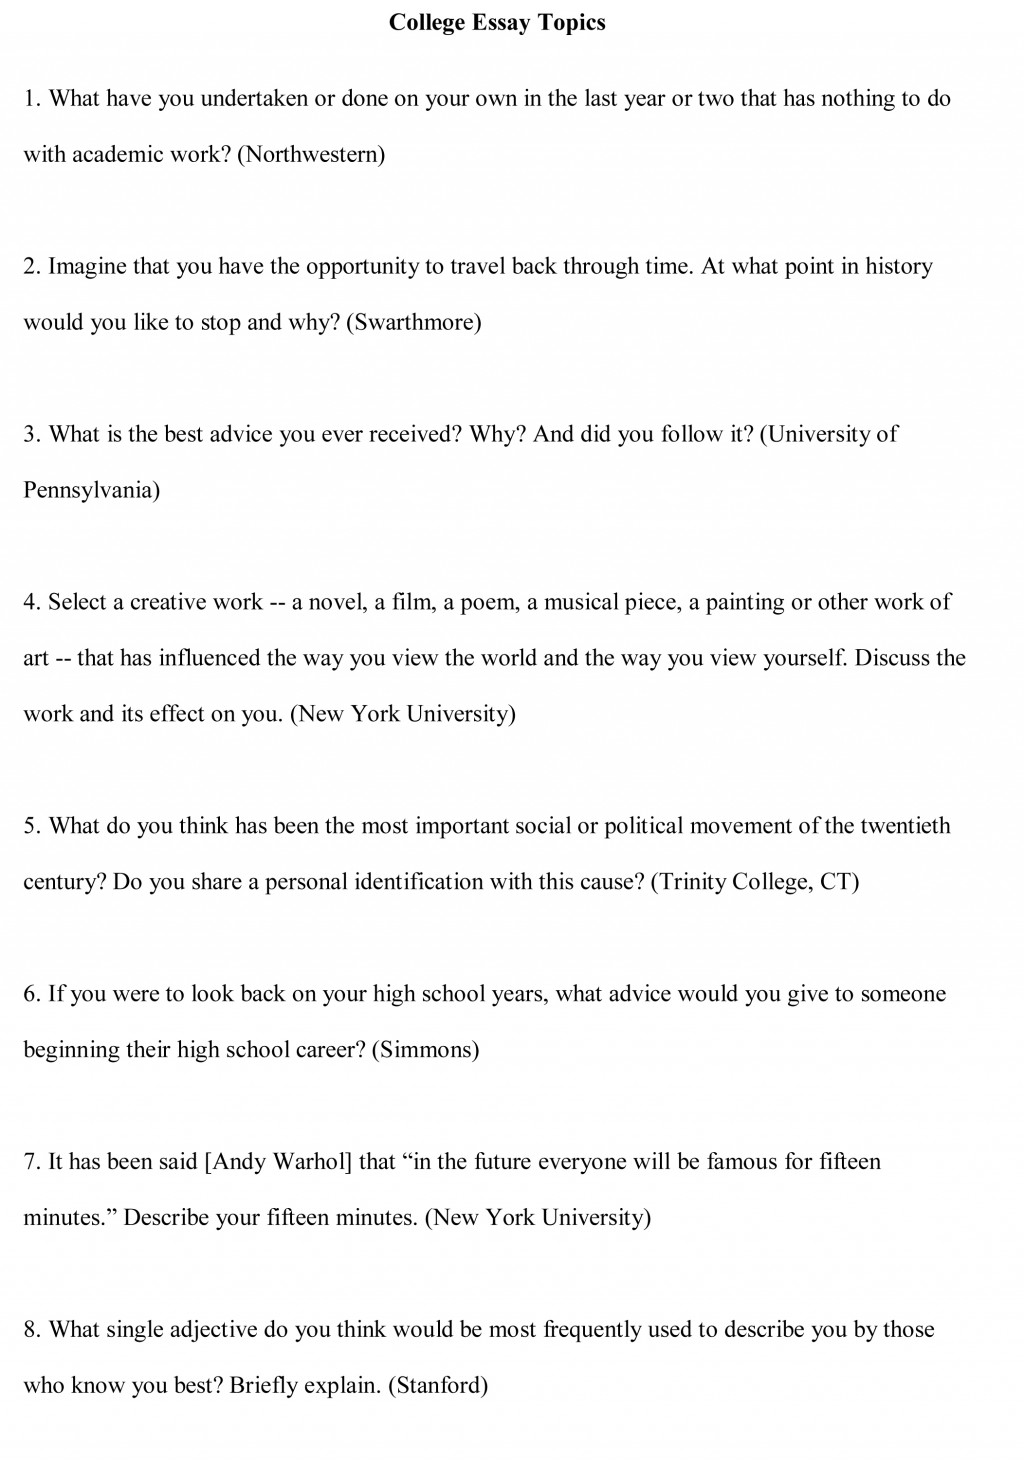 009 Essay Example Ideas For Narrative College Topics Free Beautiful A Fictional Writing Personal Descriptive Large